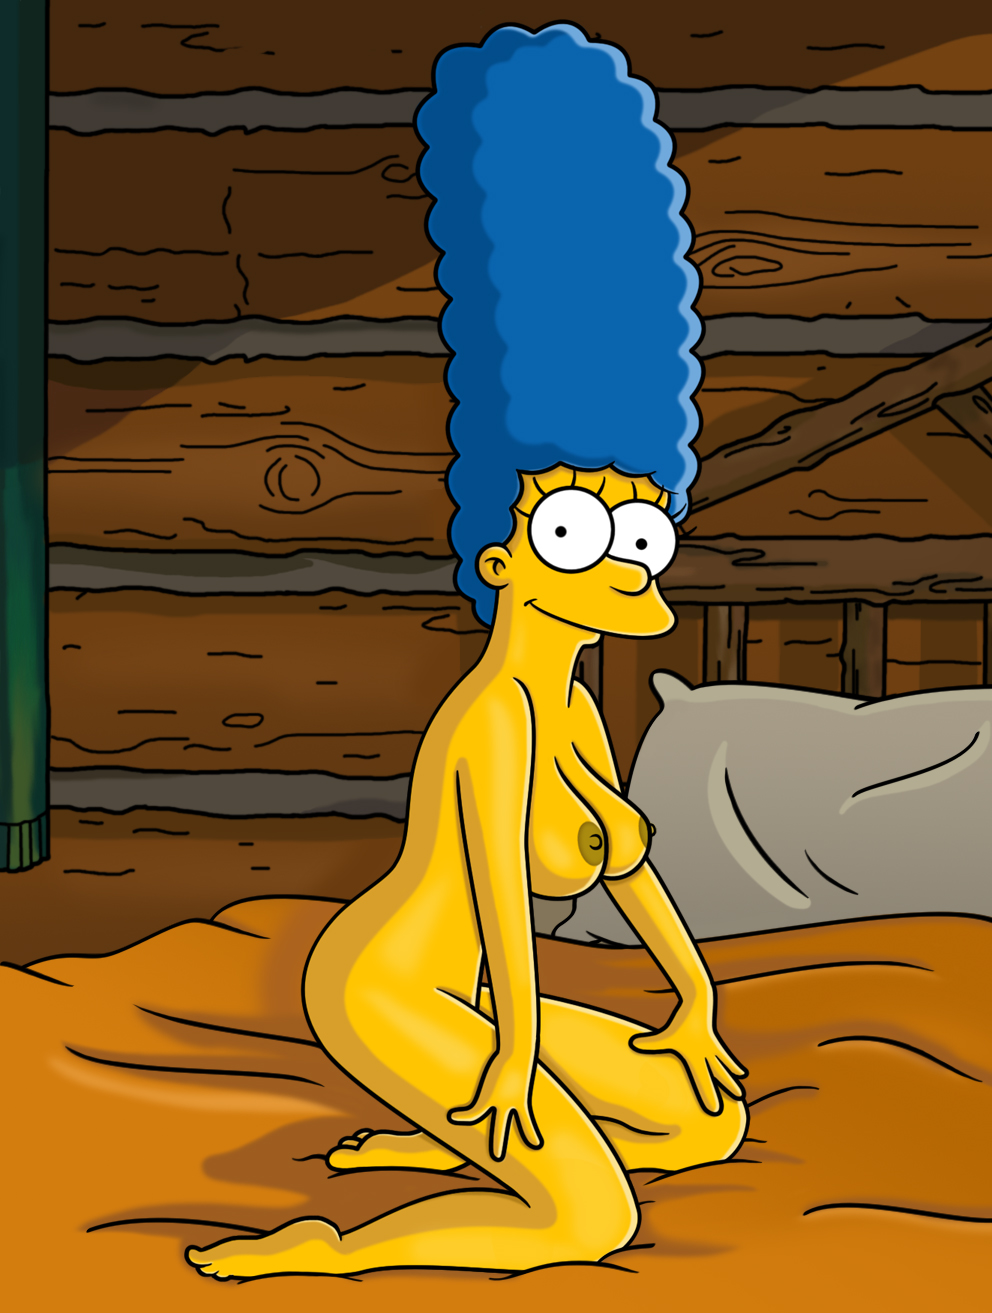 Ladies the nude simpsons